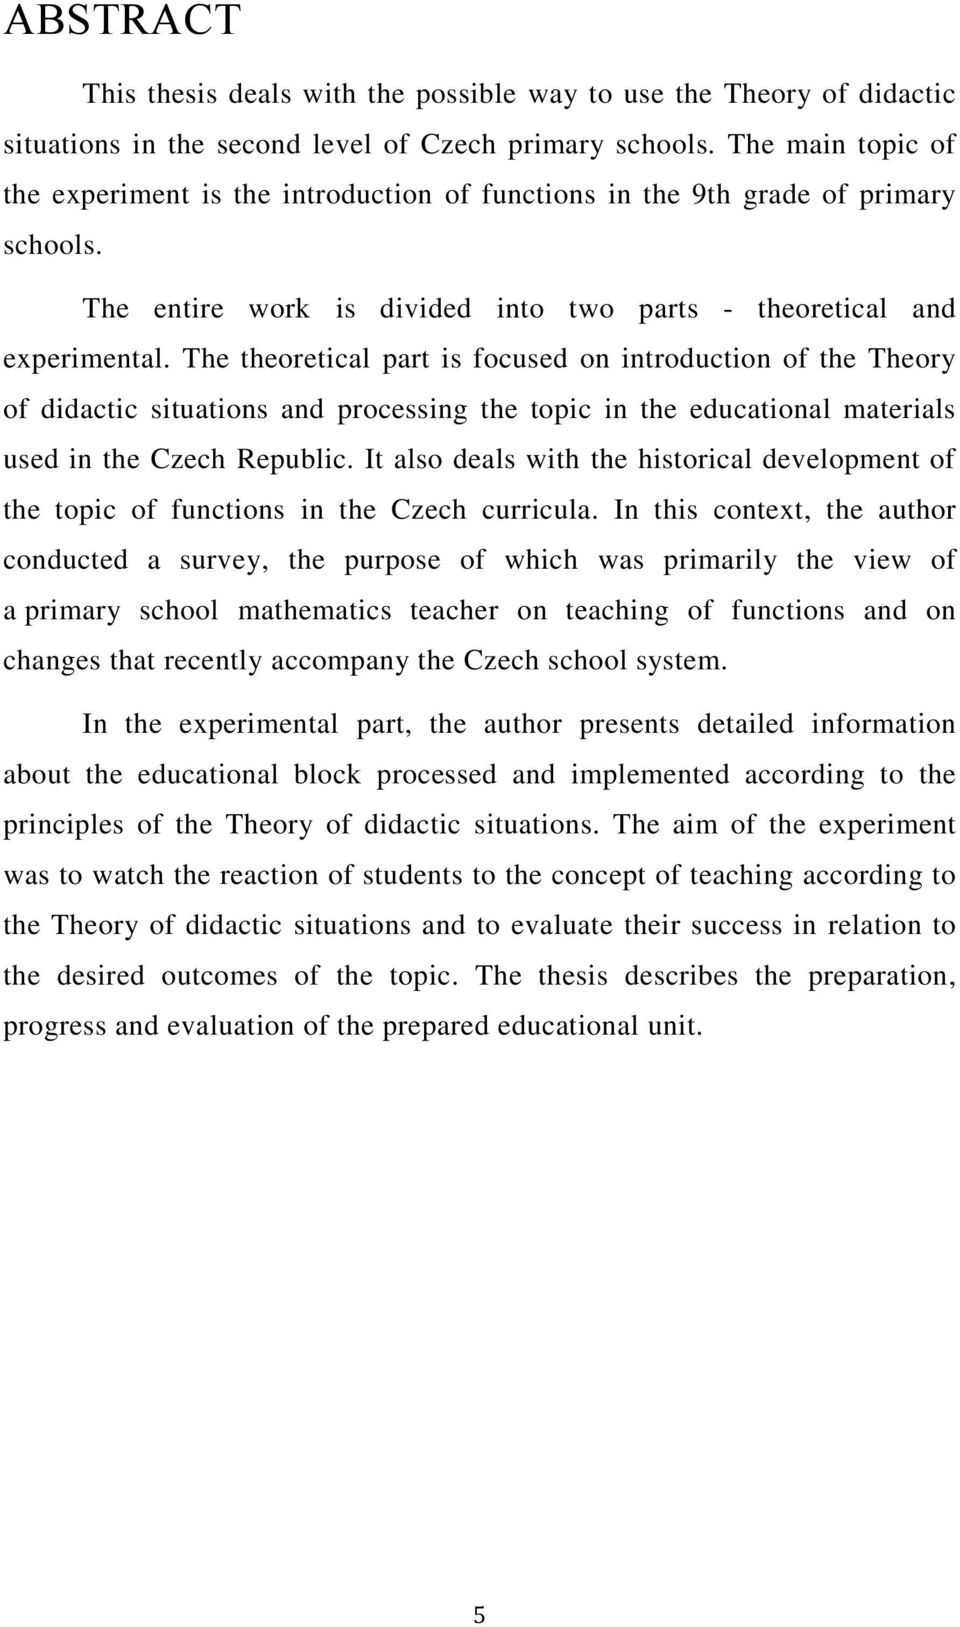 The theoretical part is focused on introduction of the Theory of didactic situations and processing the topic in the educational materials used in the Czech Republic.